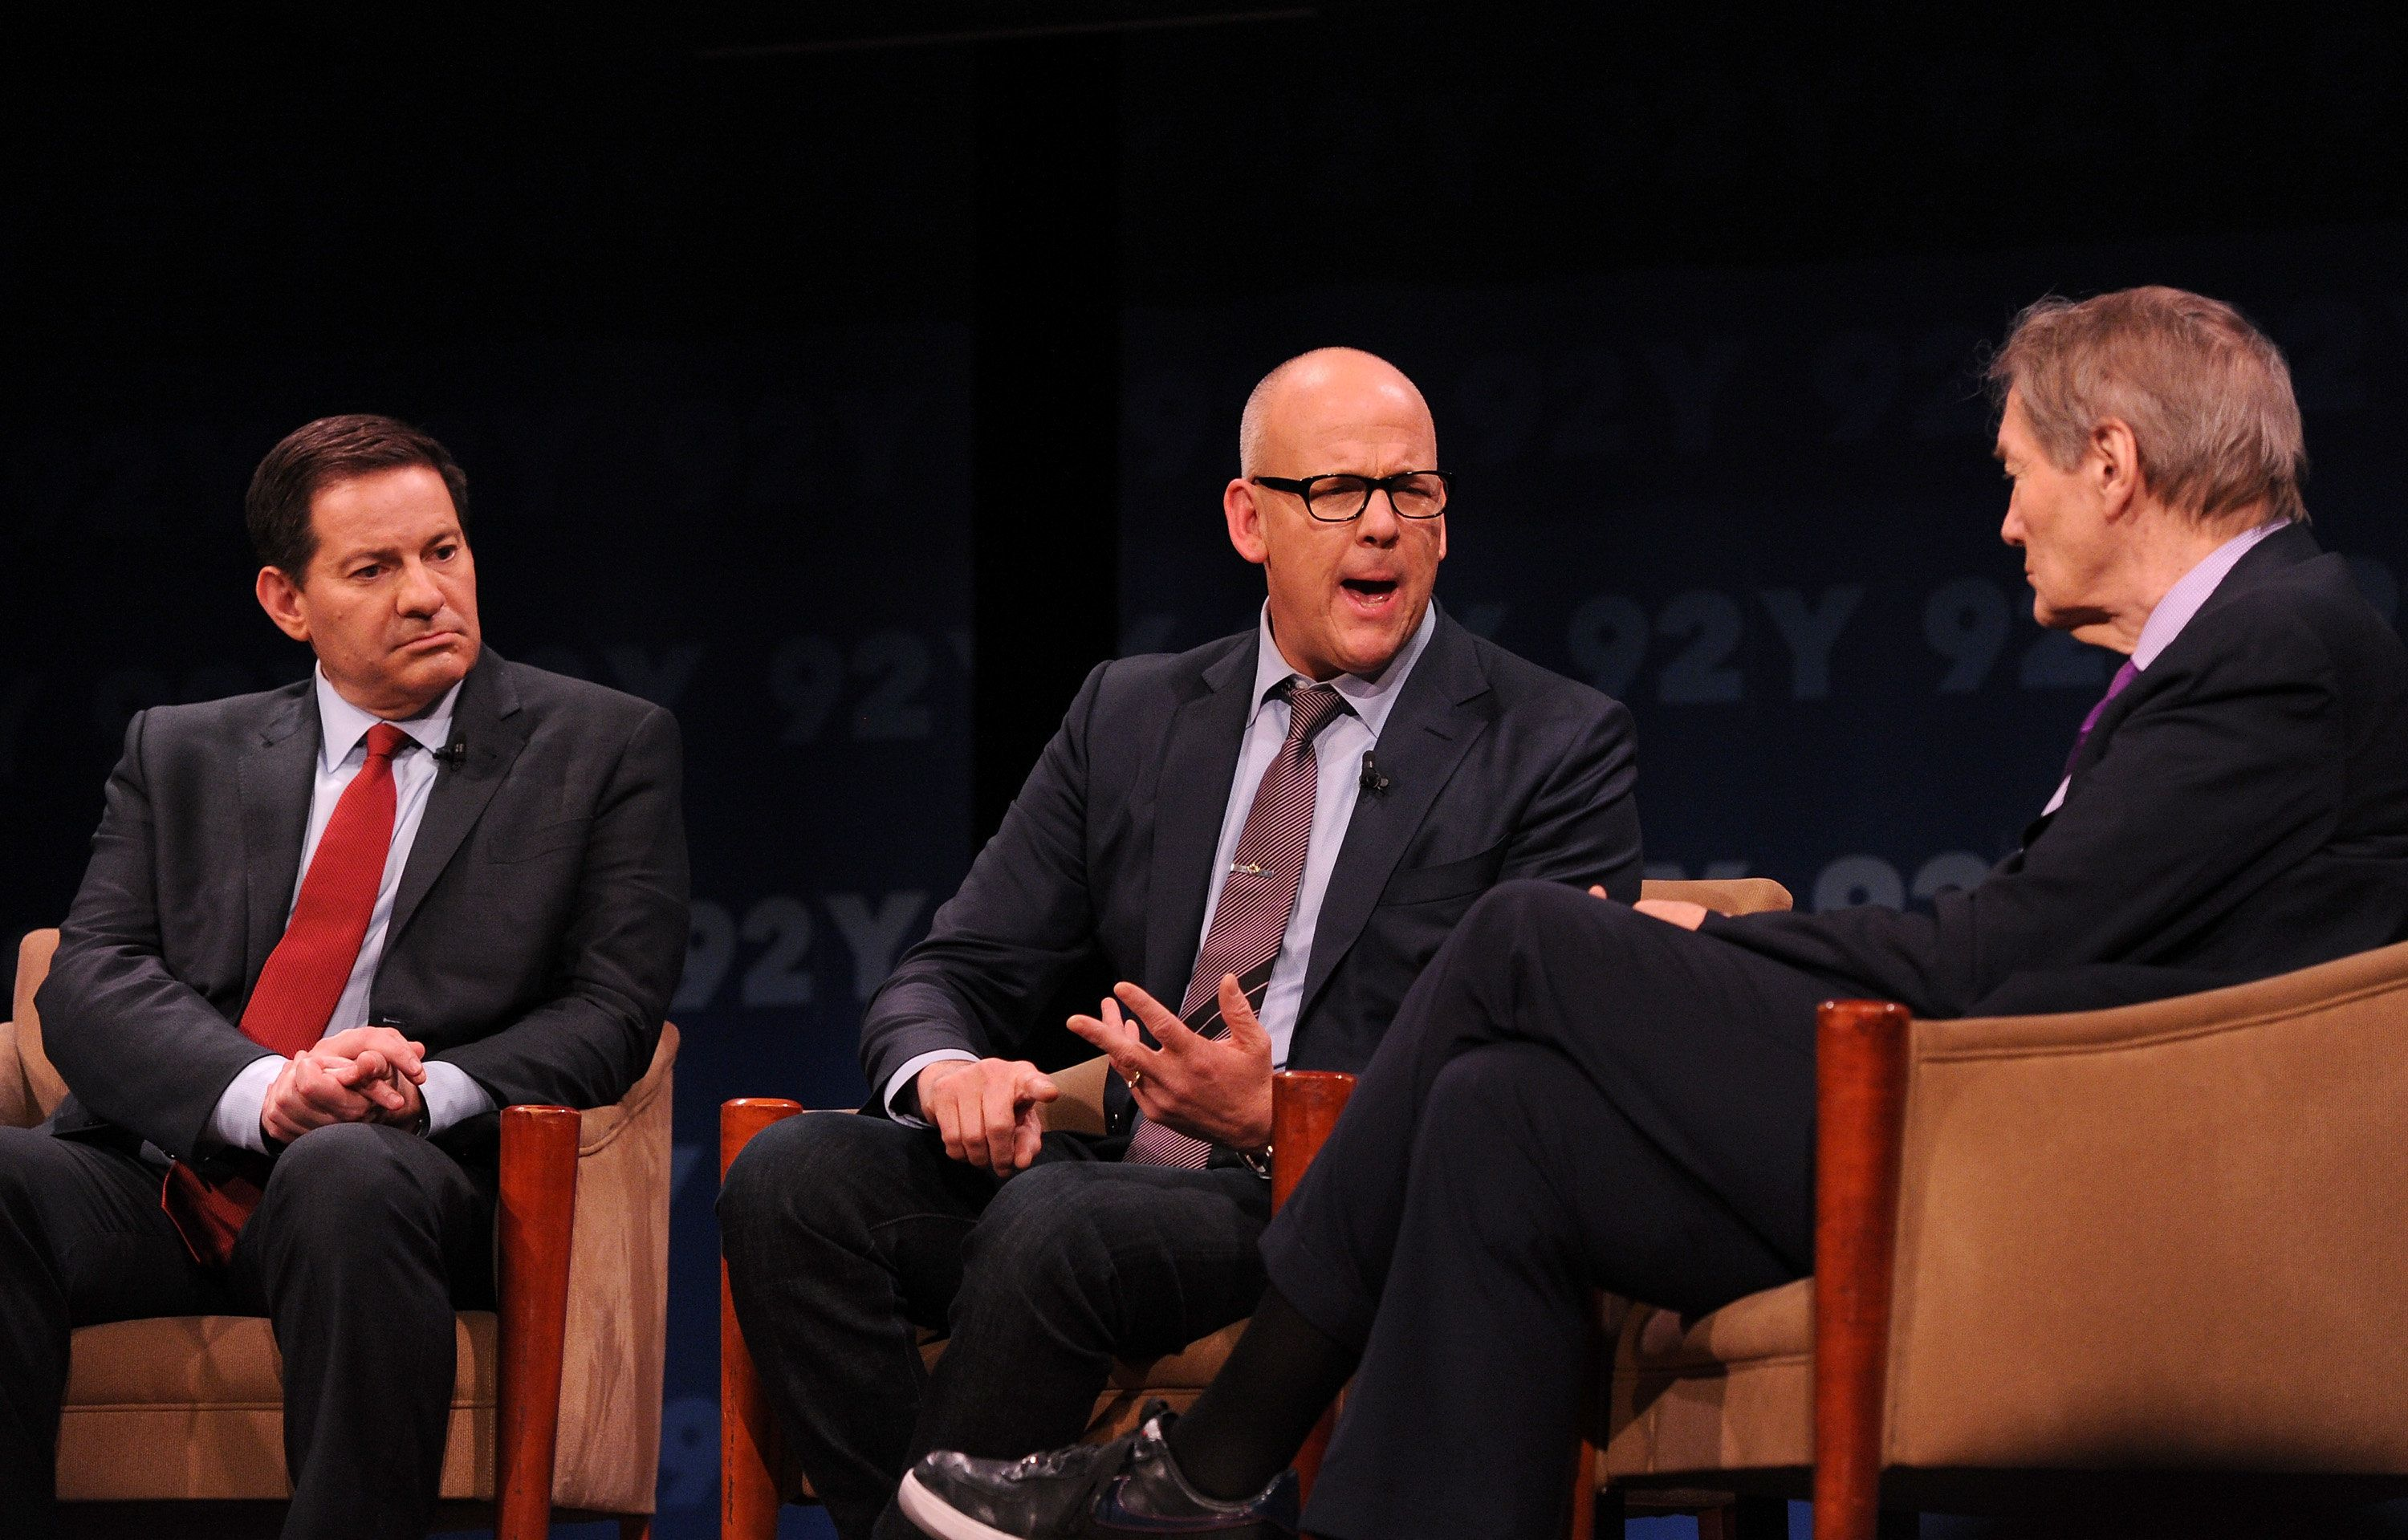 NEW YORK, NY - MAY 10:  (L-R)Mark Halperin, John Heilemann, and moderator Charlie Rose speak onstage at THE CIRCUS FYC Panel presented by Showtime and the 92Y at the 92nd Street Y on May 10, 2016 in New York City.  (Photo by Craig Barritt/Getty Images for Showtime)